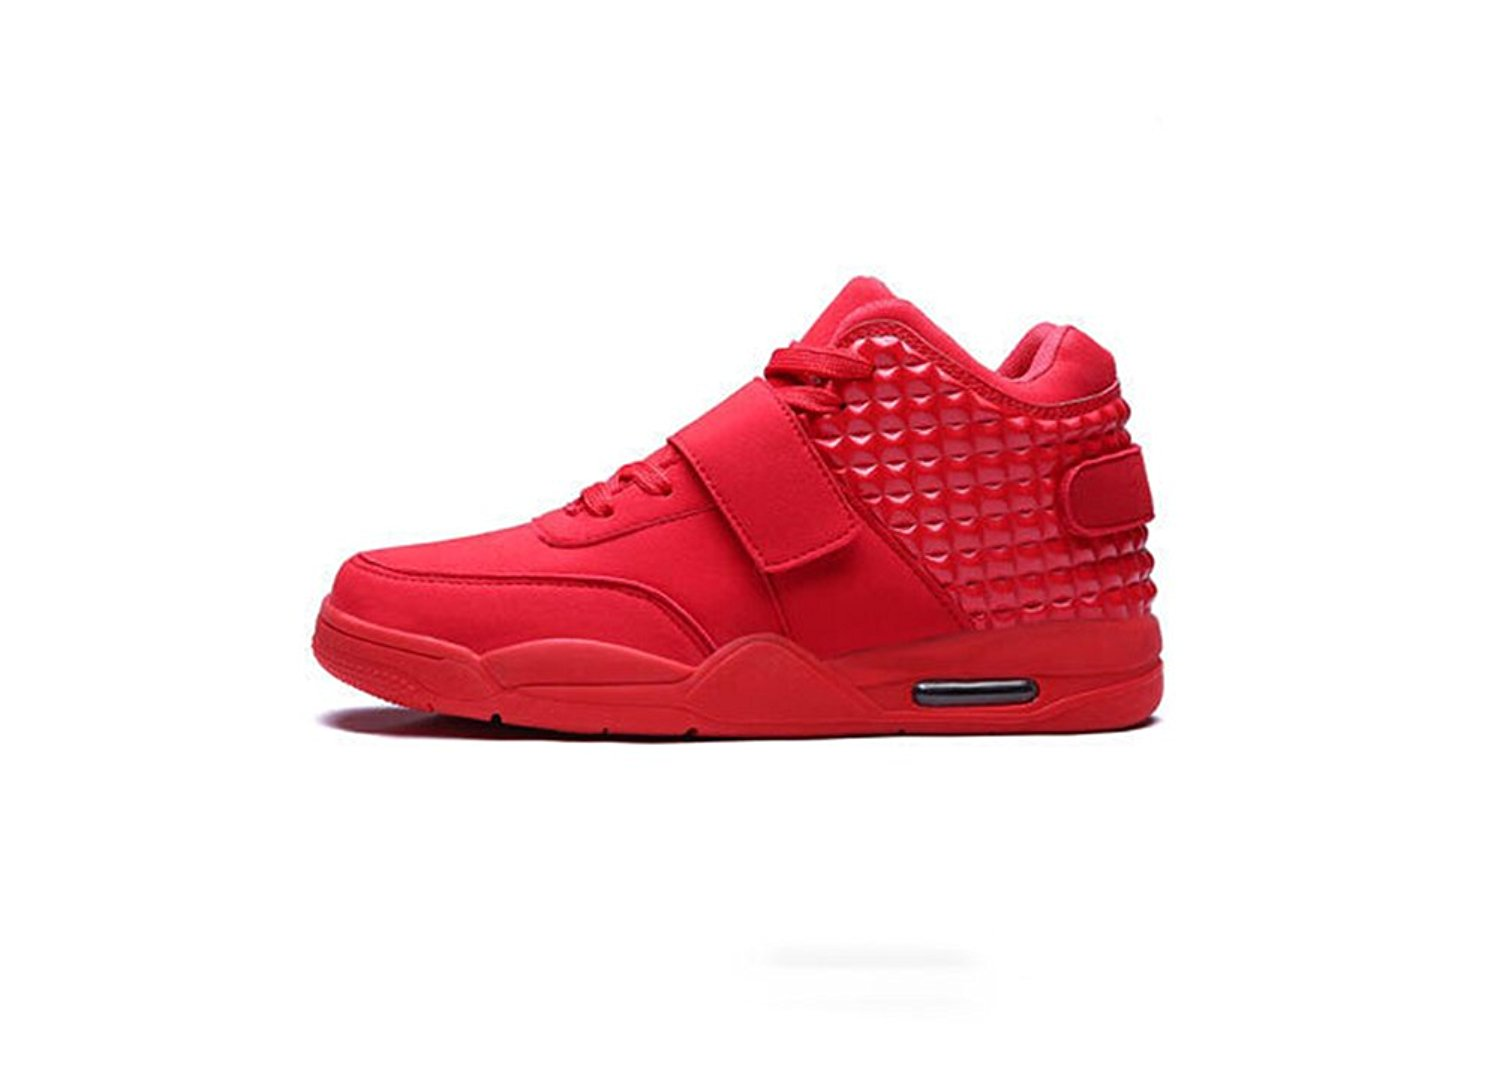 best service 9a8f8 06029 Get Quotations · Veribuy Fashion Men s High Top Sneakers Wearable Non-Slip  Basketball Shoes Red White